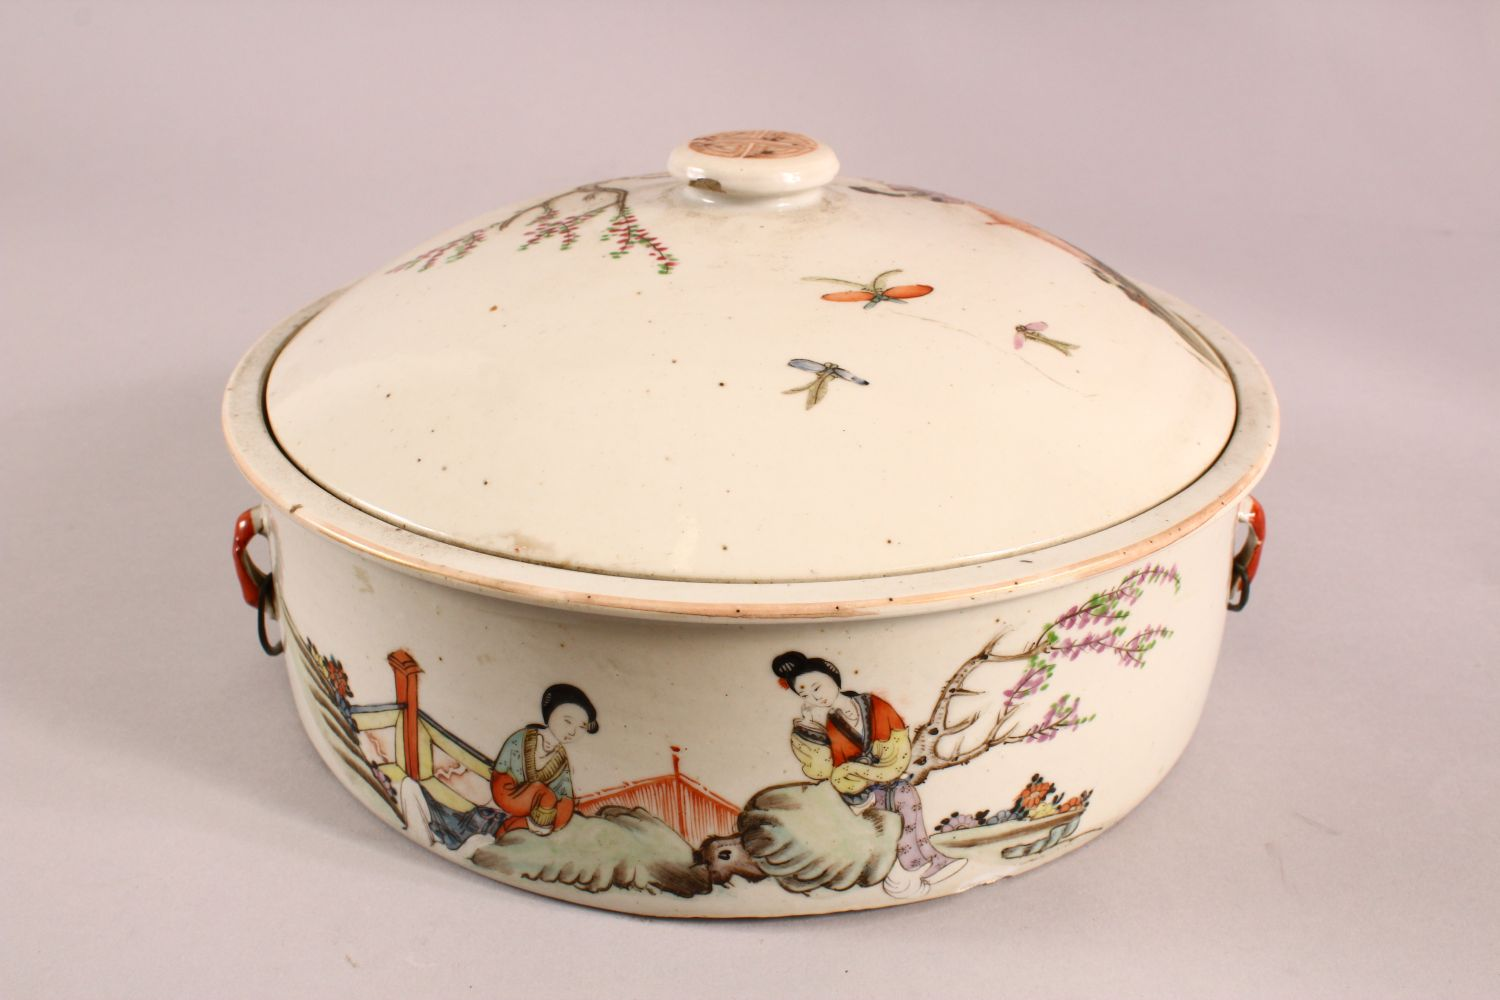 A 19TH CENTURY CHINESE FAMILLE ROSE PORCELAIN BOWL & COVER, with decoration of figures in - Image 3 of 6